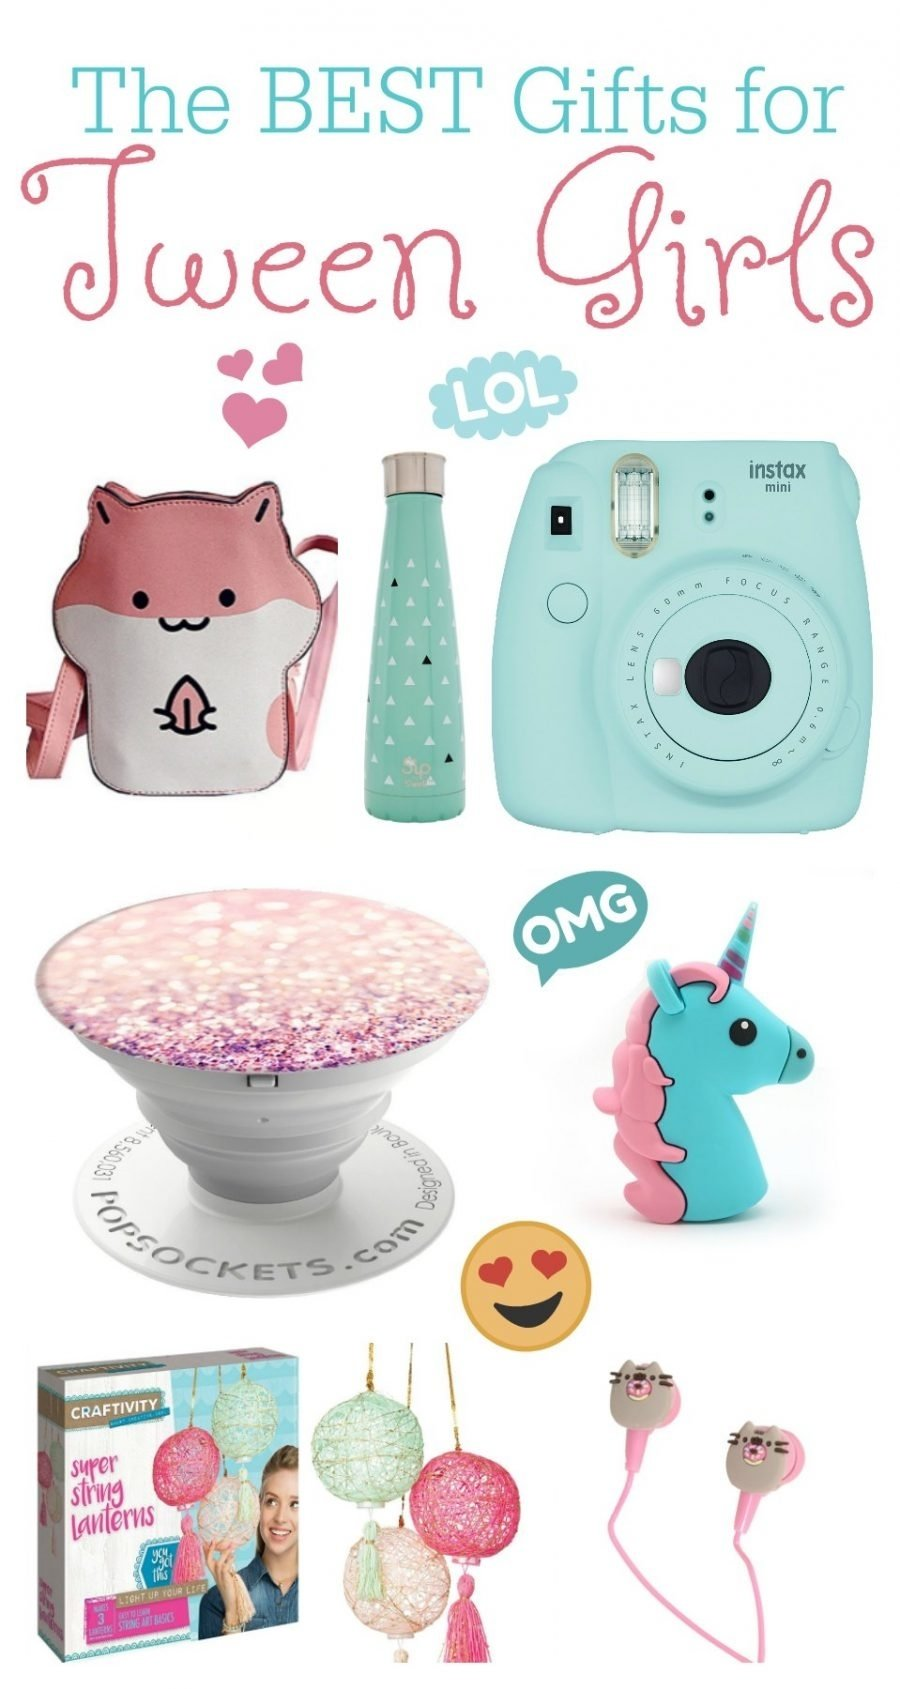 10 Unique Gift Ideas For Tween Girl the best gift ideas for tween girls 1 2021